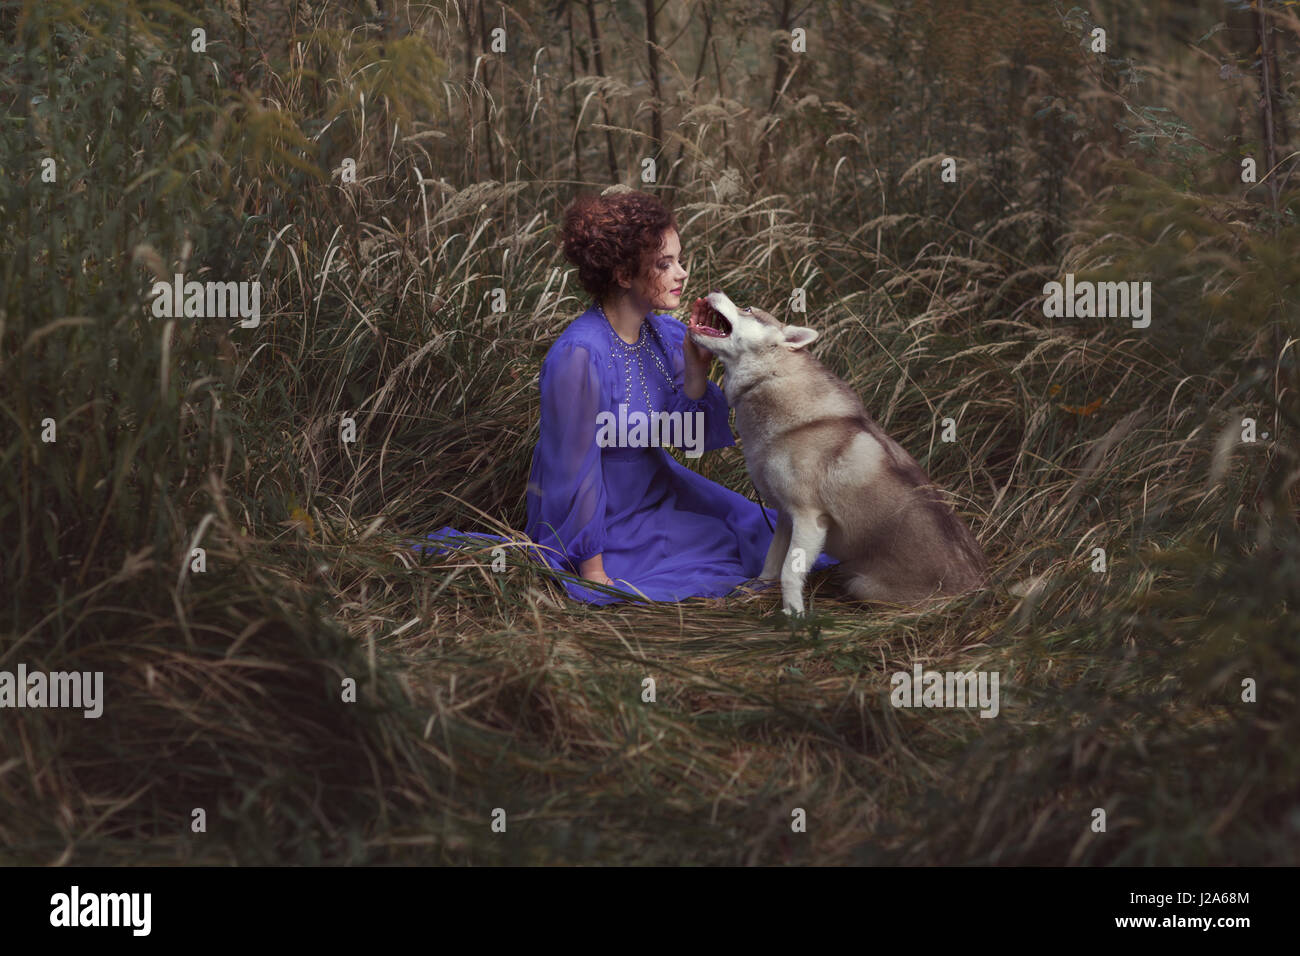 Husky dog talking to a woman, they are in a fairy tale. - Stock Image